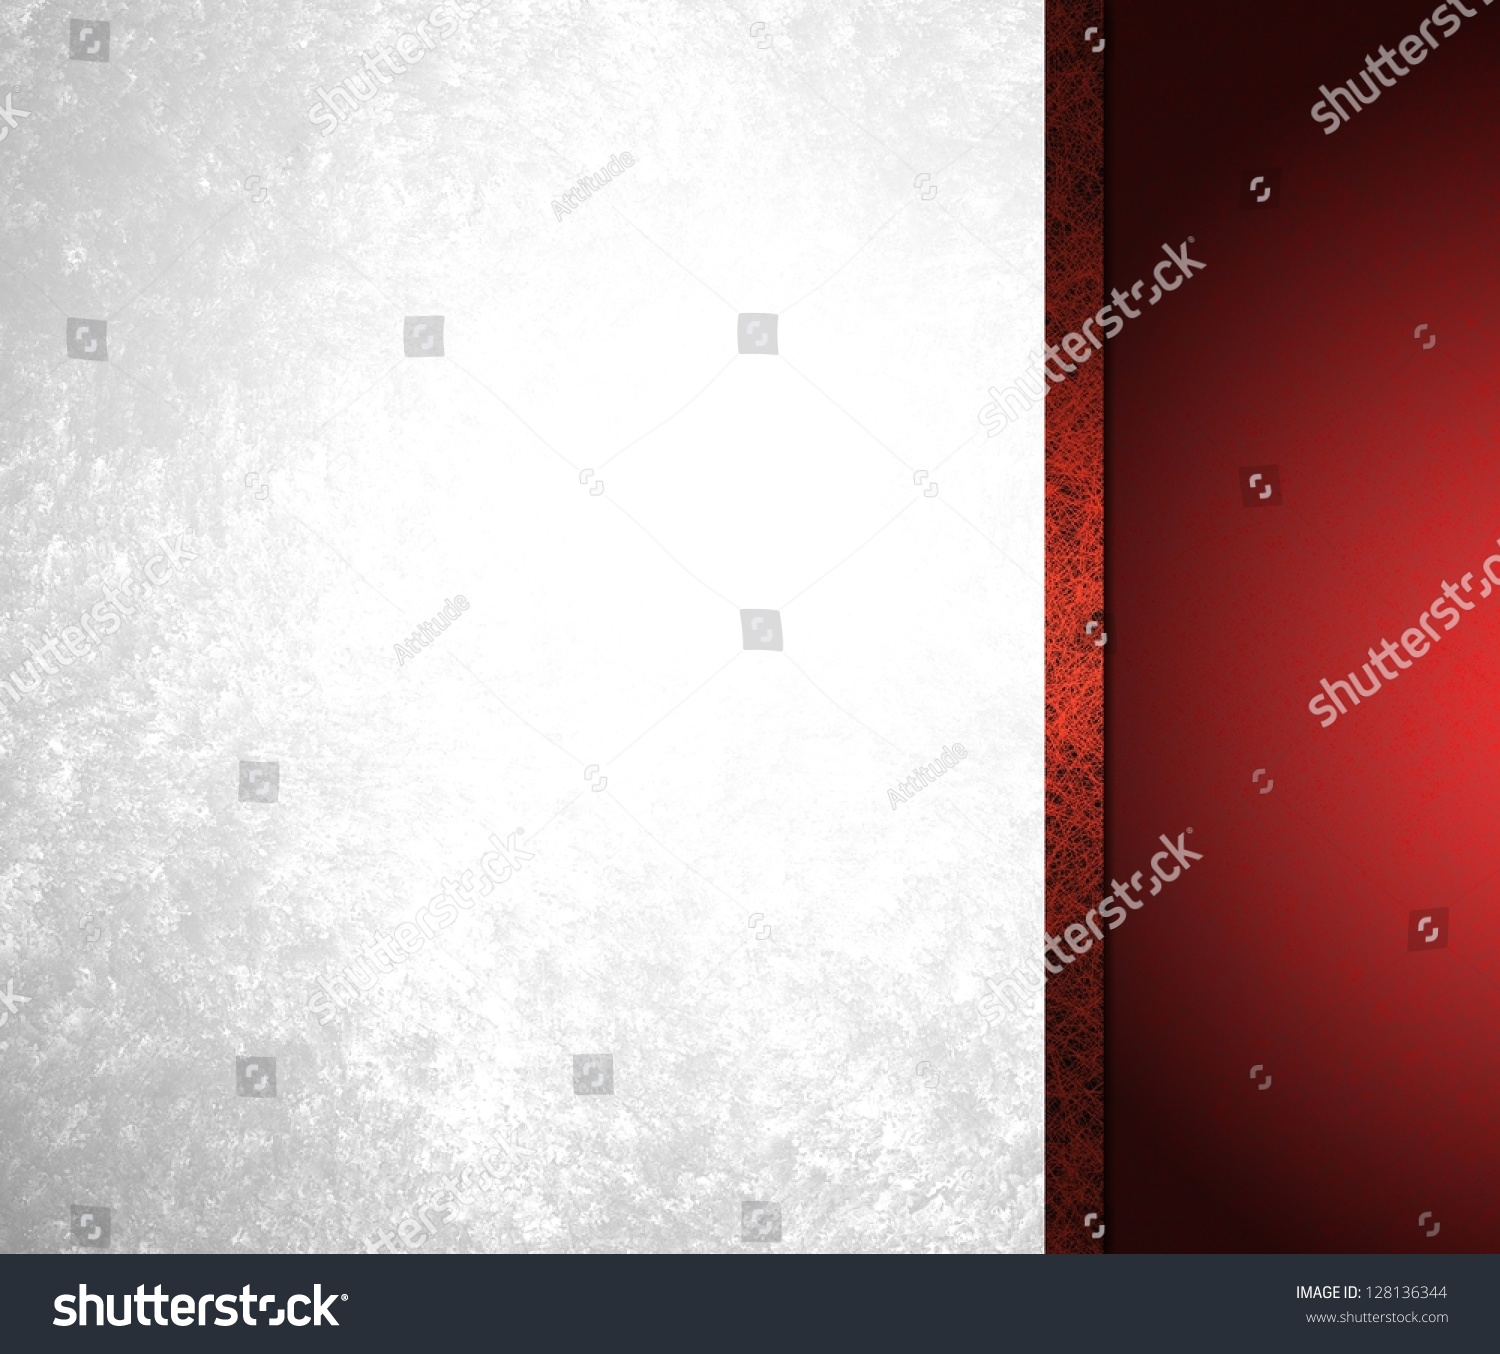 Border frame with black and yellow stripe on white background - Border Frame With Black And Yellow Stripe On White Background Abstract White Background Red Stripe Download